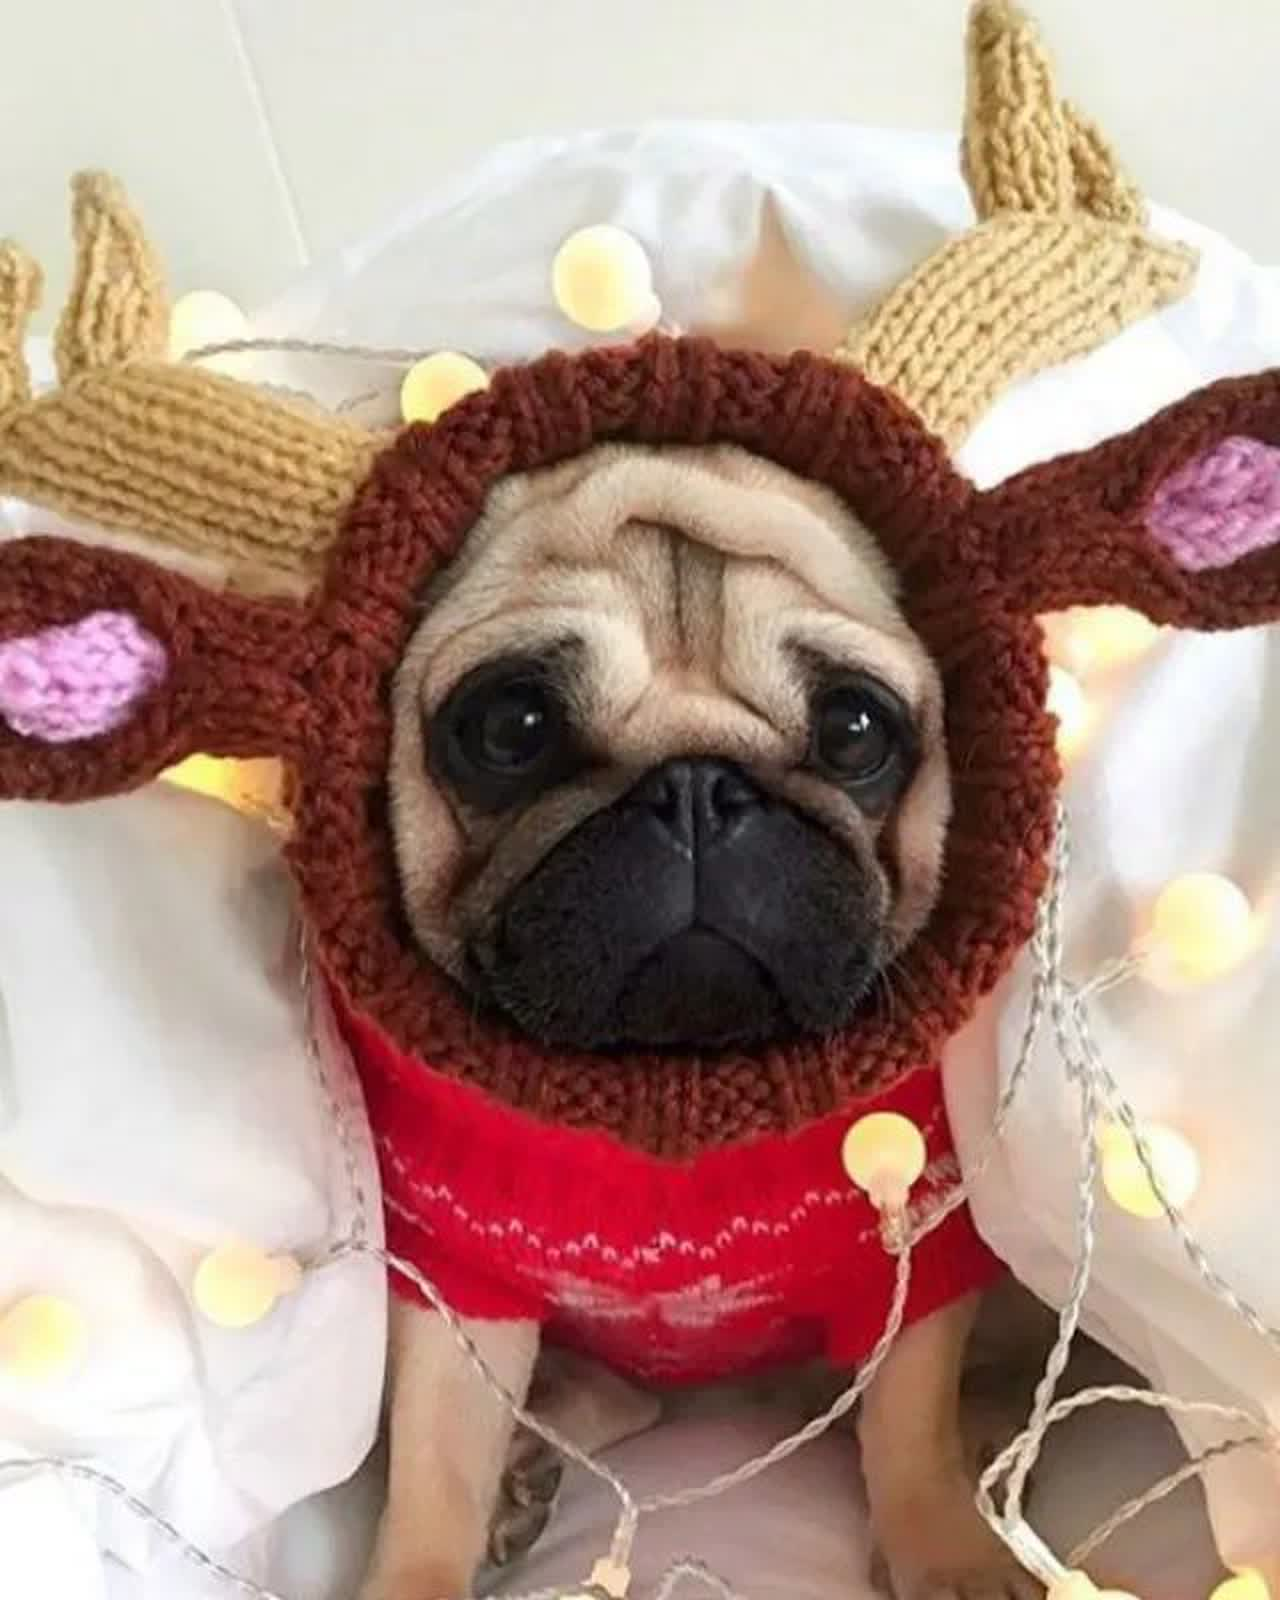 A pug wearing knitted antlers.